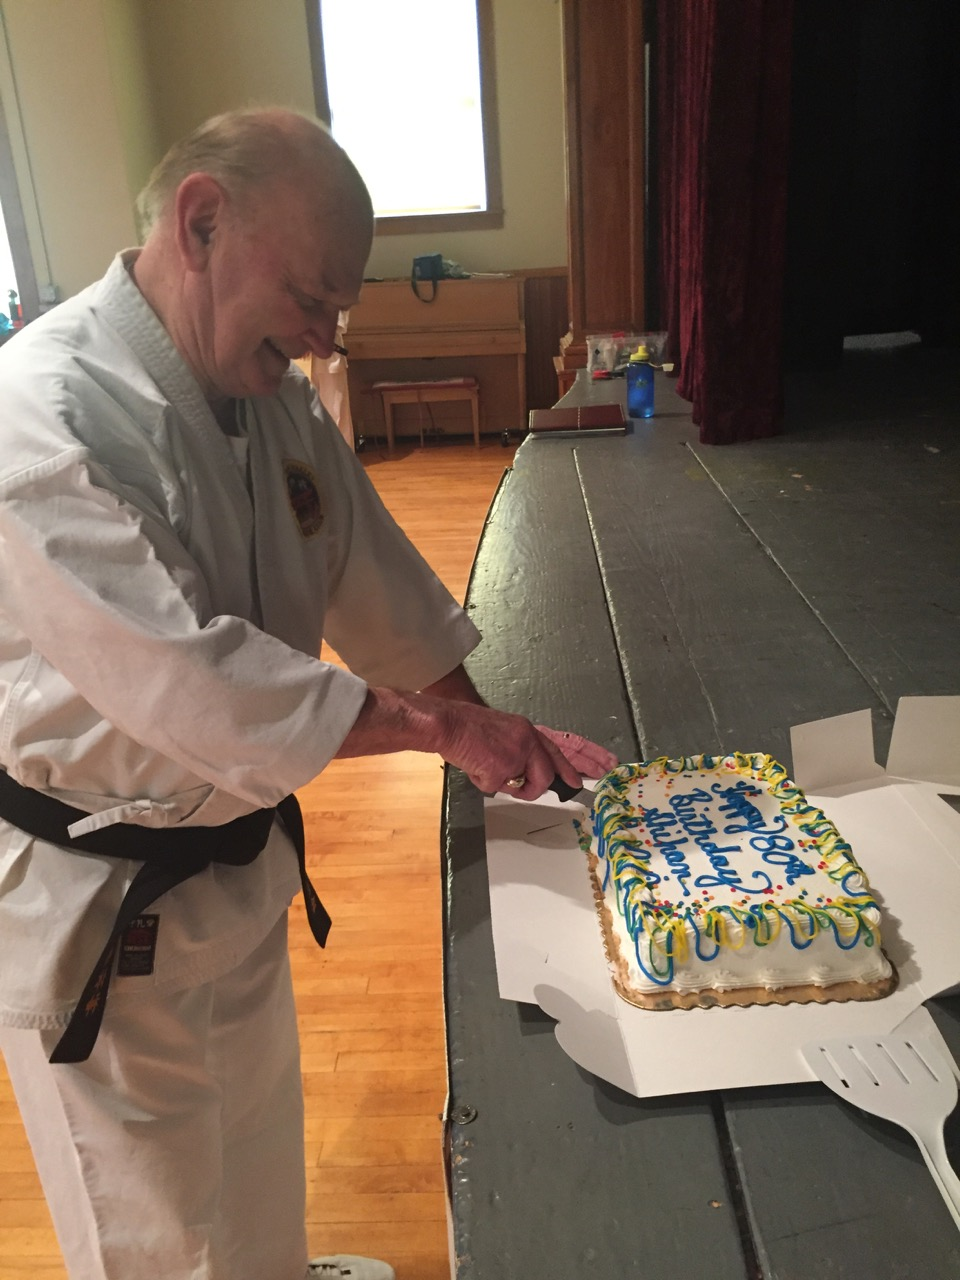 Happy Birthday Shihan Powell, 80 years strong and an inspiration to us all!